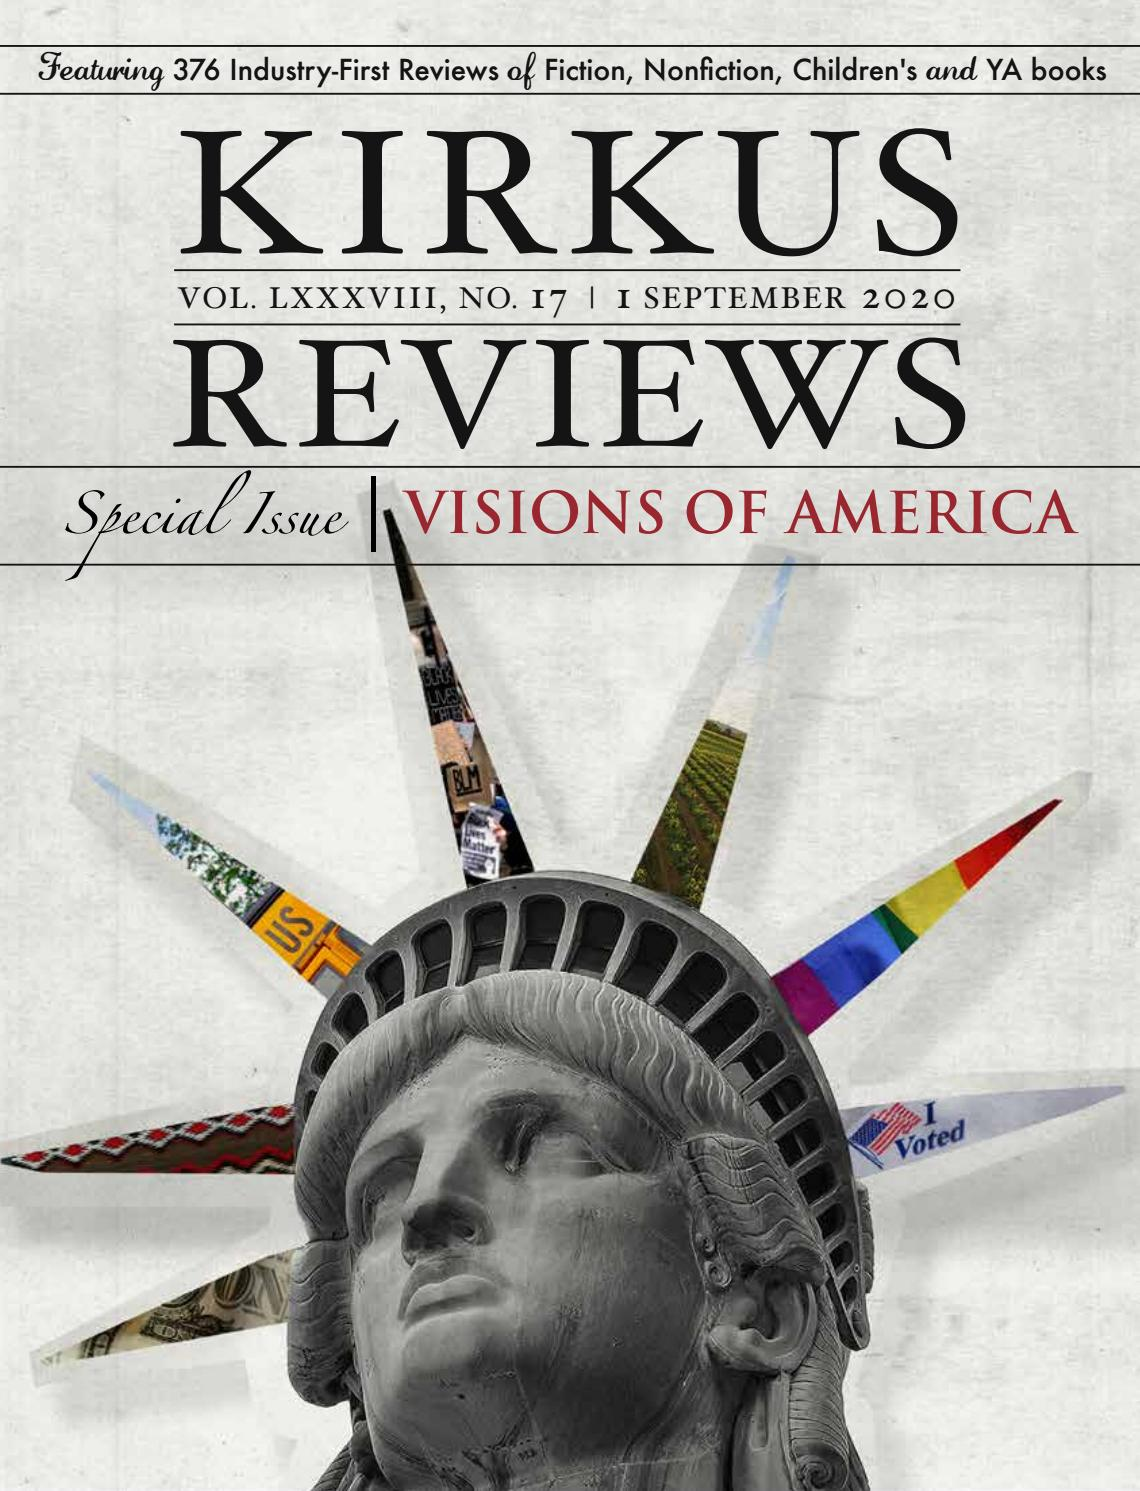 September 1 2020 Volume Lxxxviii No 17 By Kirkus Reviews Issuu